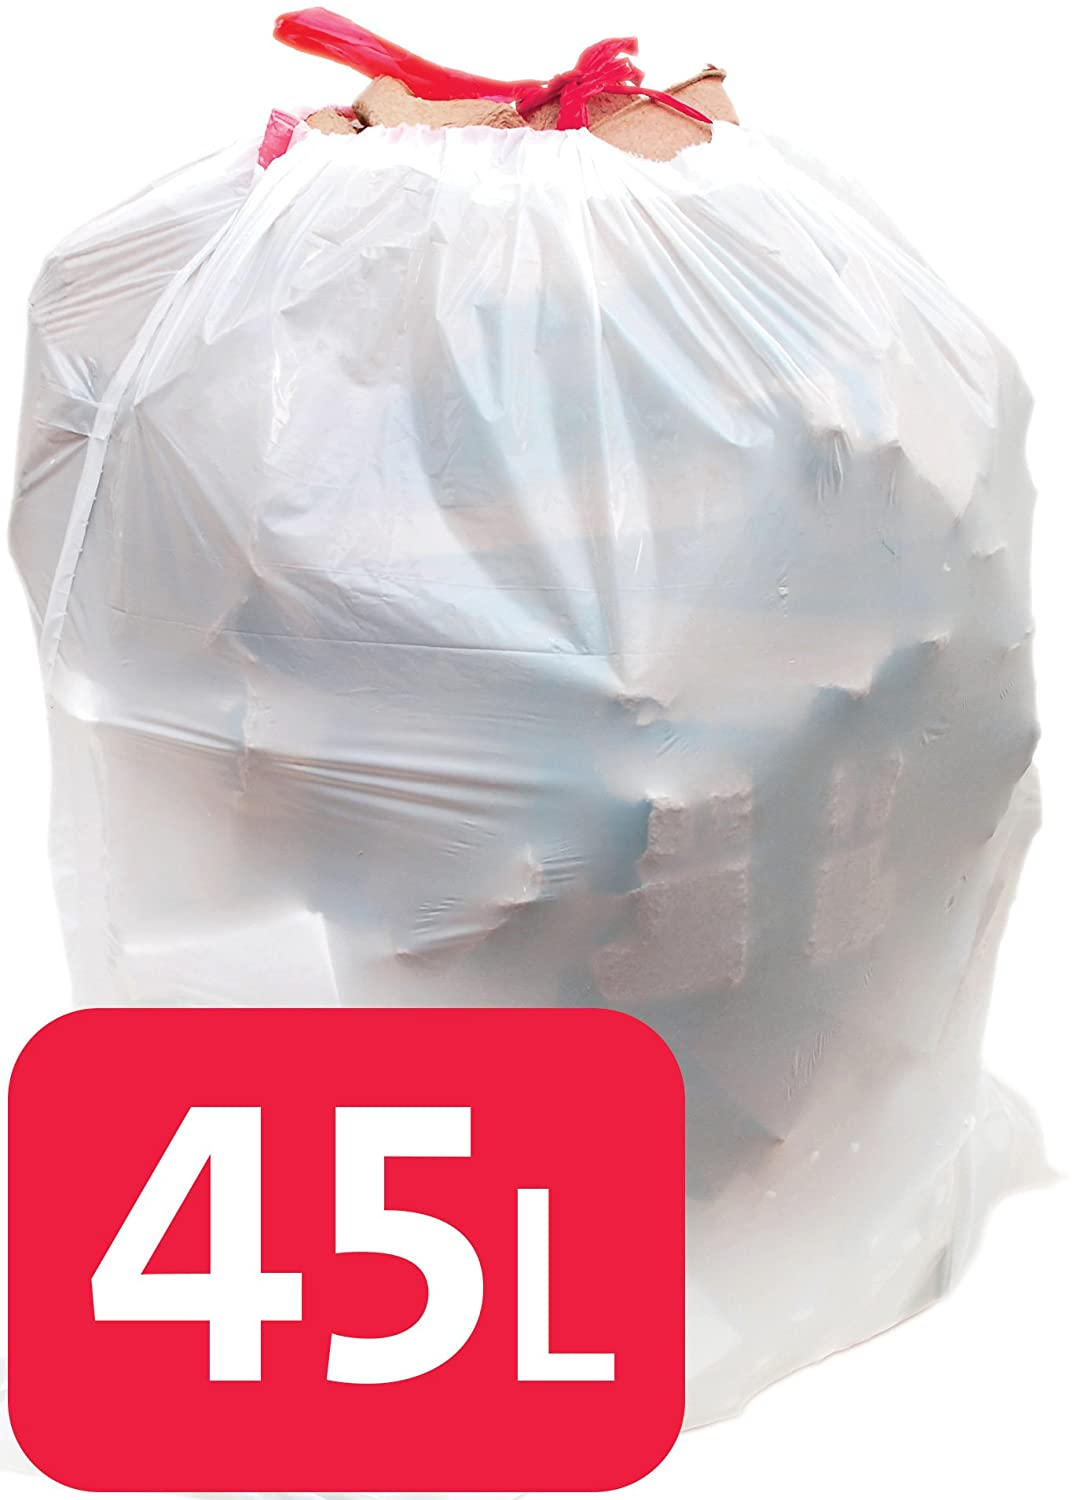 75 x Alina 45L Polythene Drawstring Bin Liner / Bin Bag / Medium-weight 45 Litre White Plastic Draw Tape Garbage Sack (75 bags)